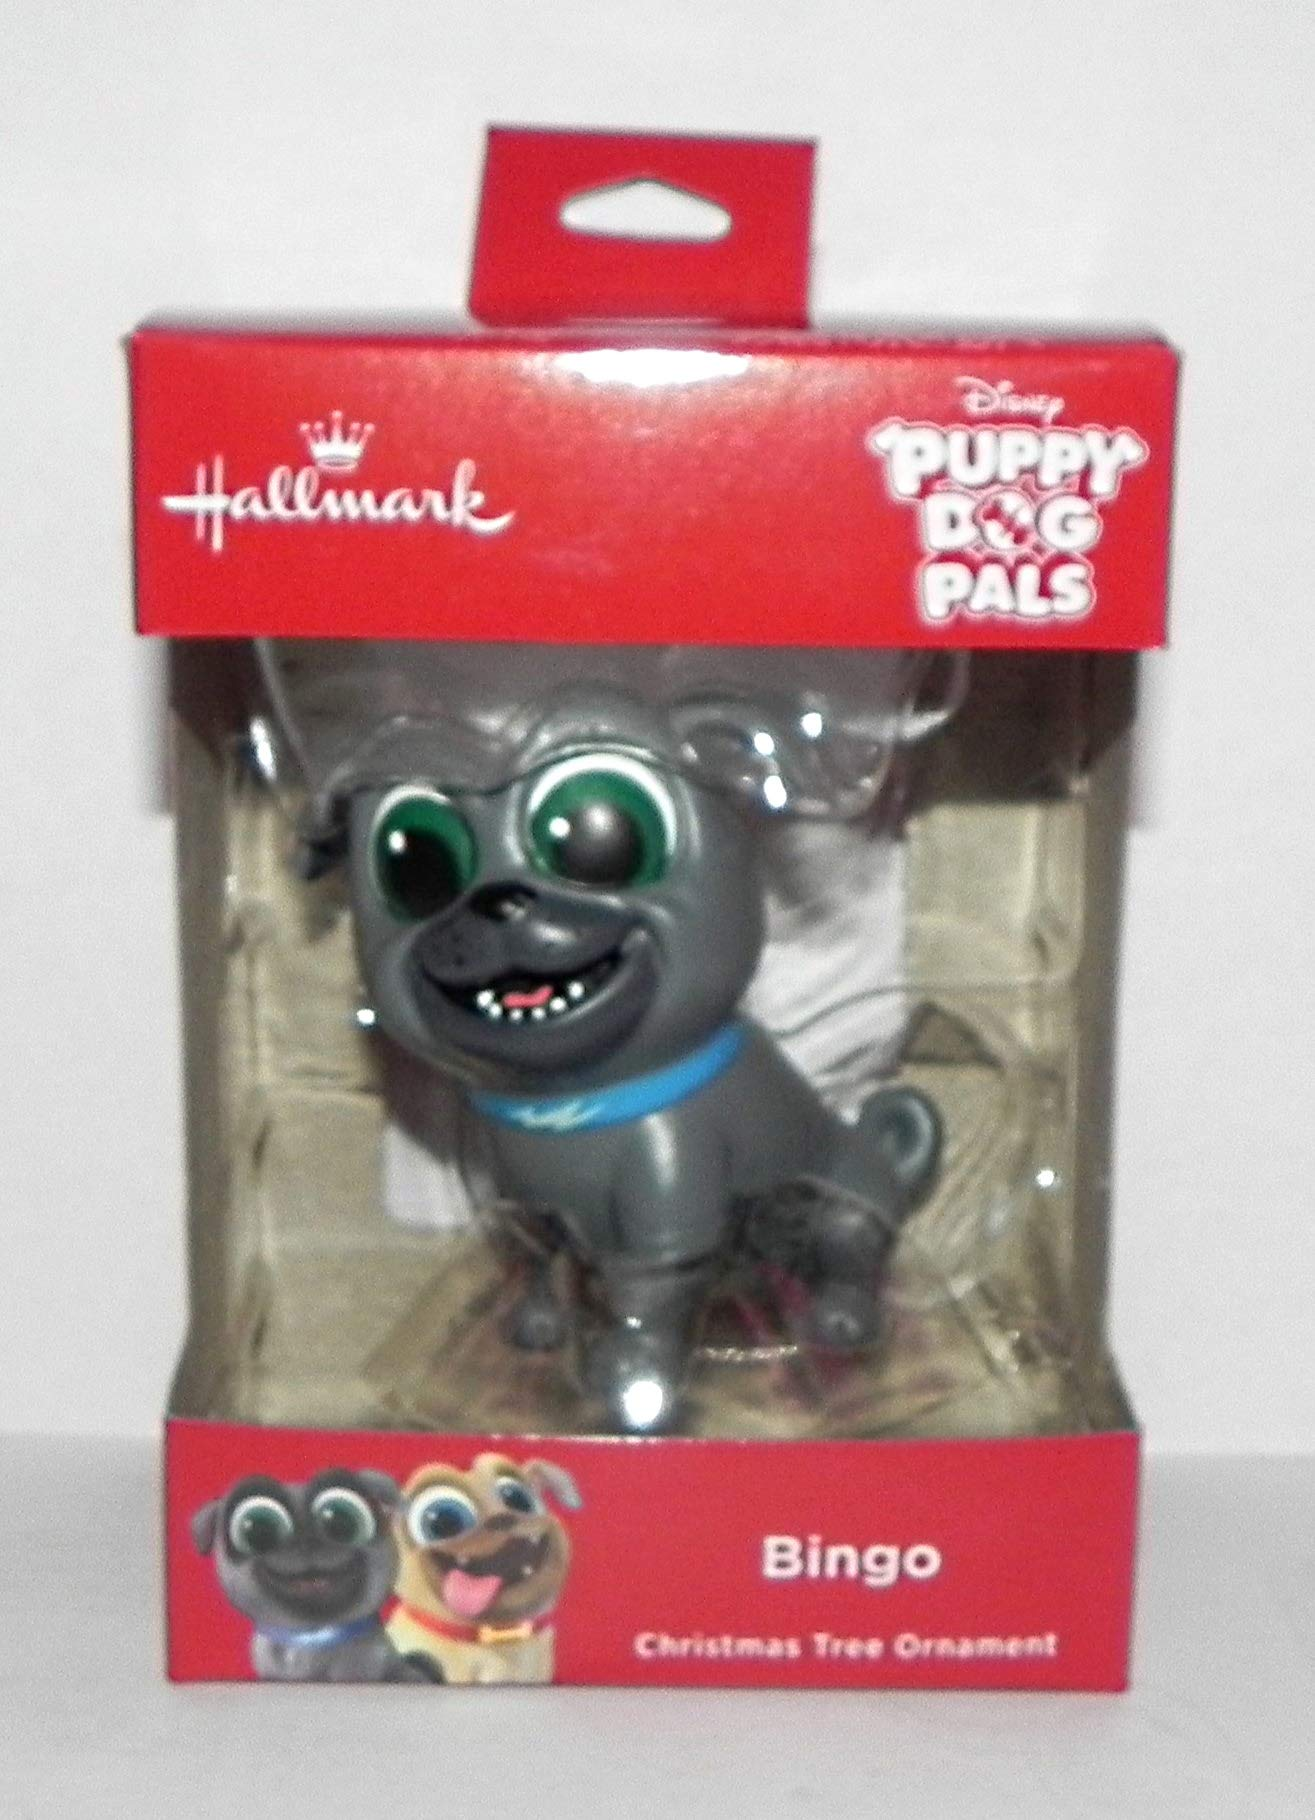 2018 Hallmark Disney Jr Puppy Dog Pals Bingo Christmas Ornament by HallmarkDisney